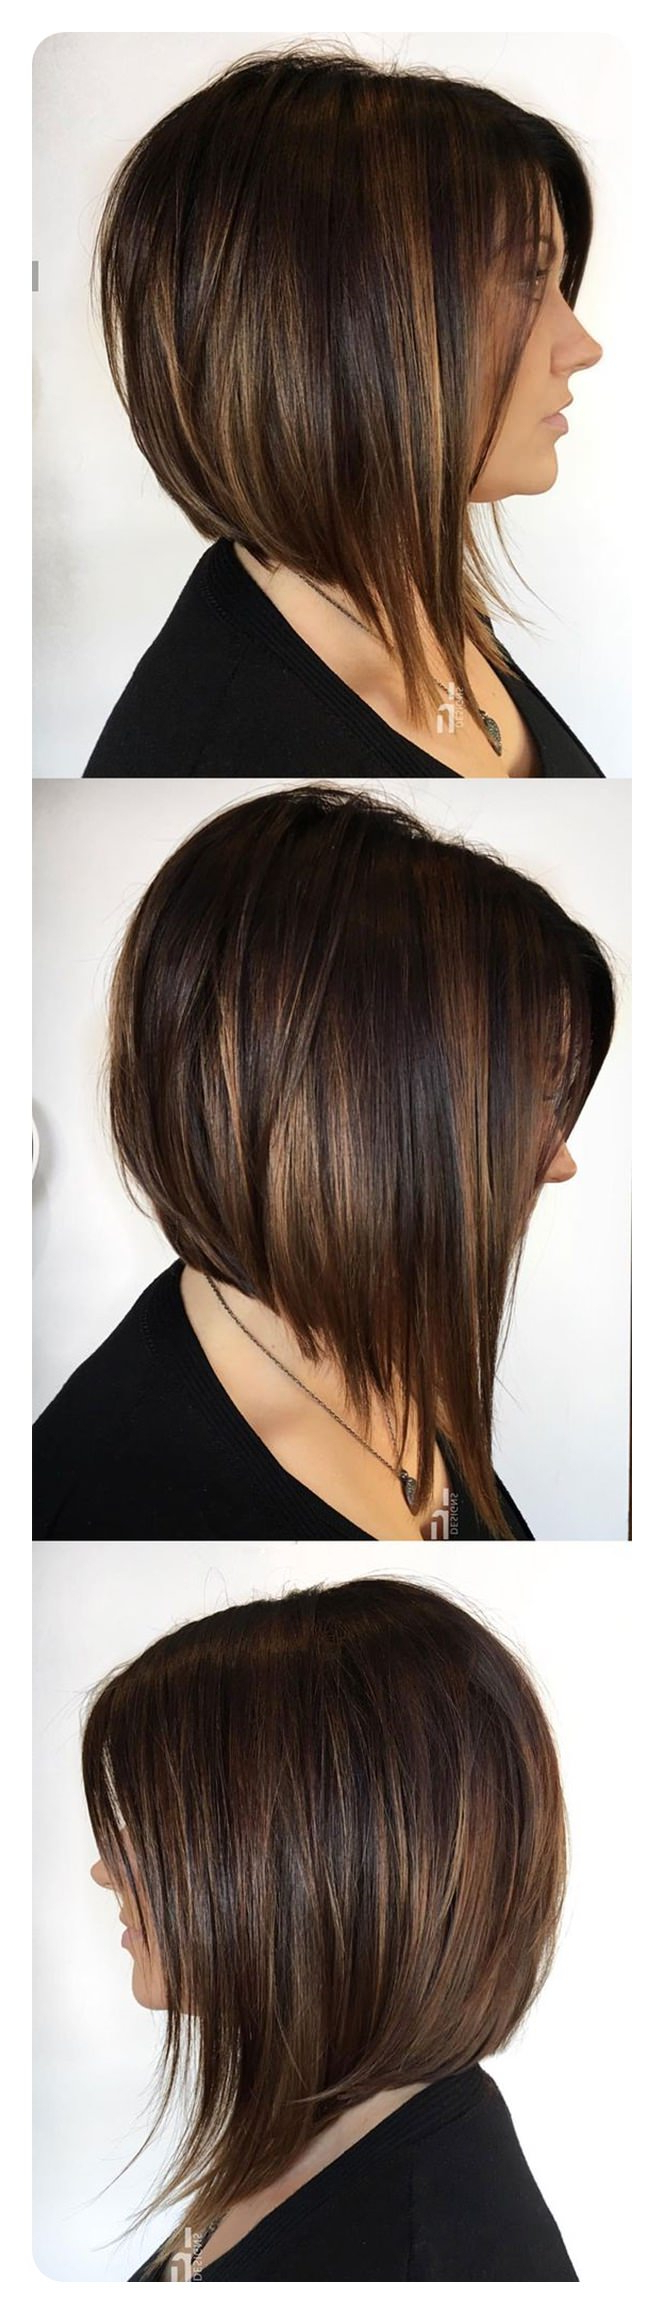 92 Layered Inverted Bob Hairstyles That You Should Try Within Current Super Short Inverted Bob Hairstyles (View 10 of 20)